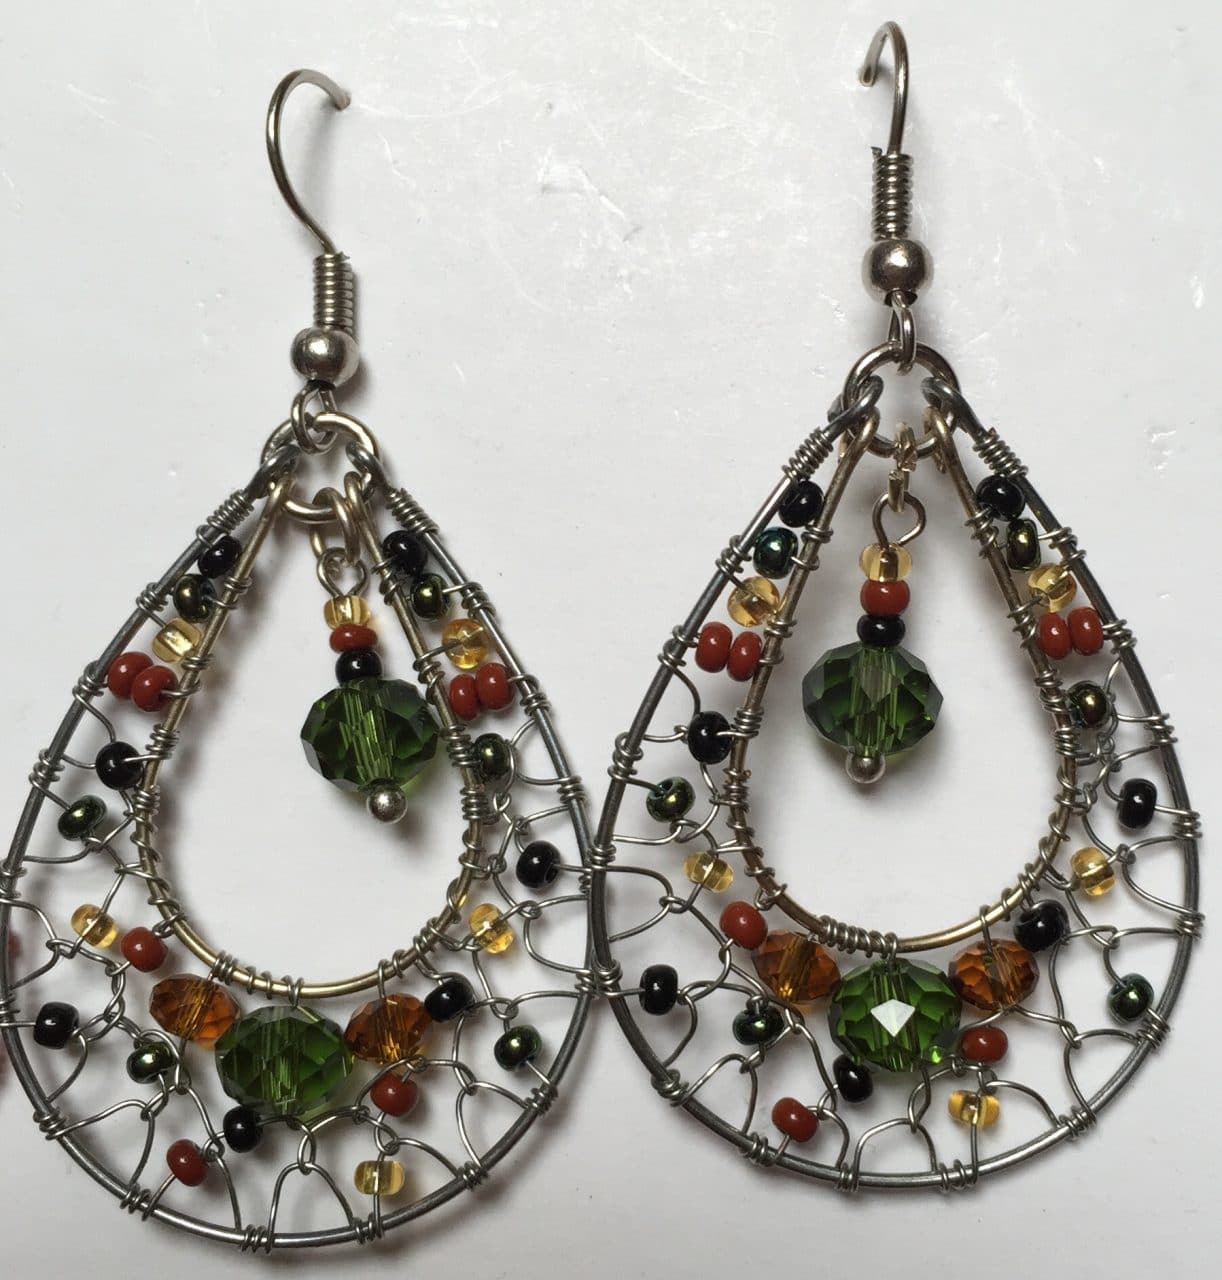 Teardrop Dreamcatcher Earrings - Sophisticated Autumn